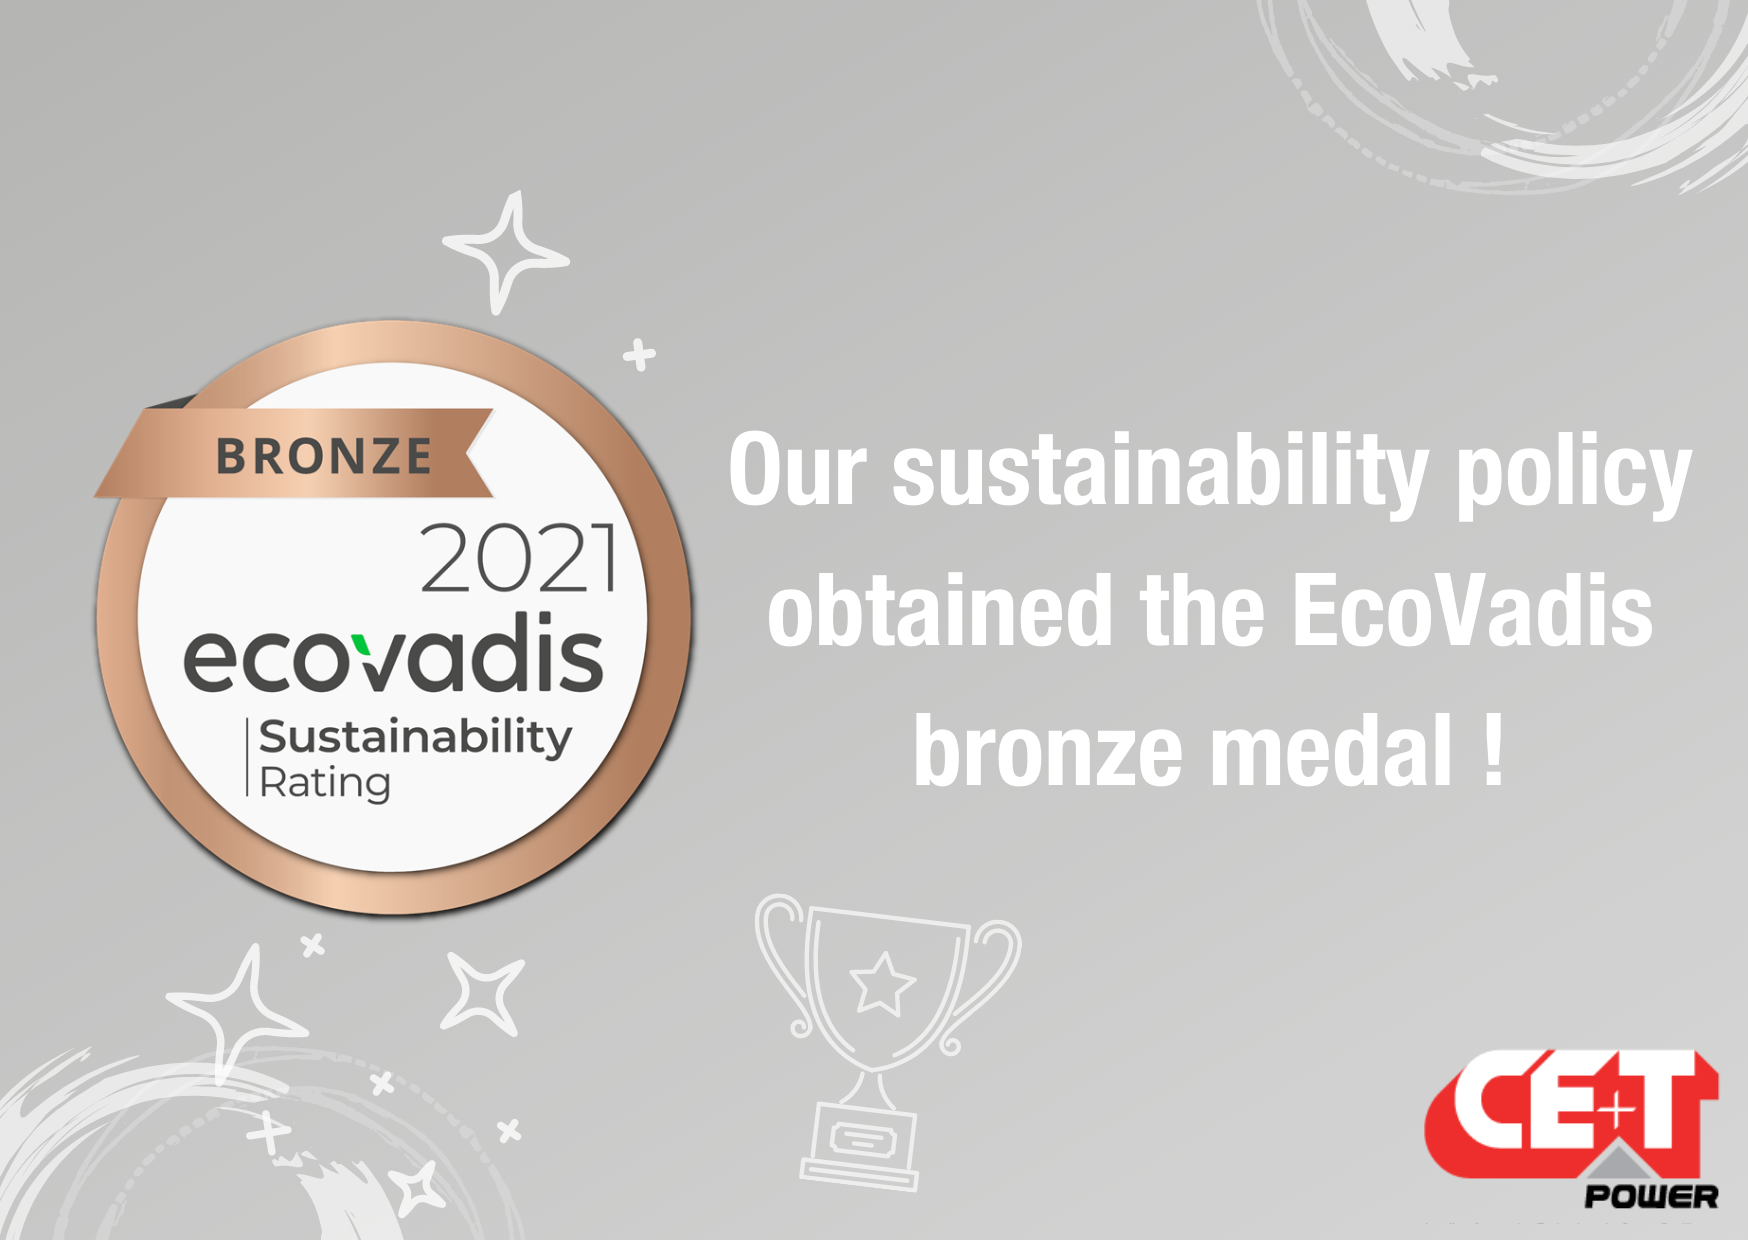 CE+T Power has been awarded a bronze medal by EcoVadis.